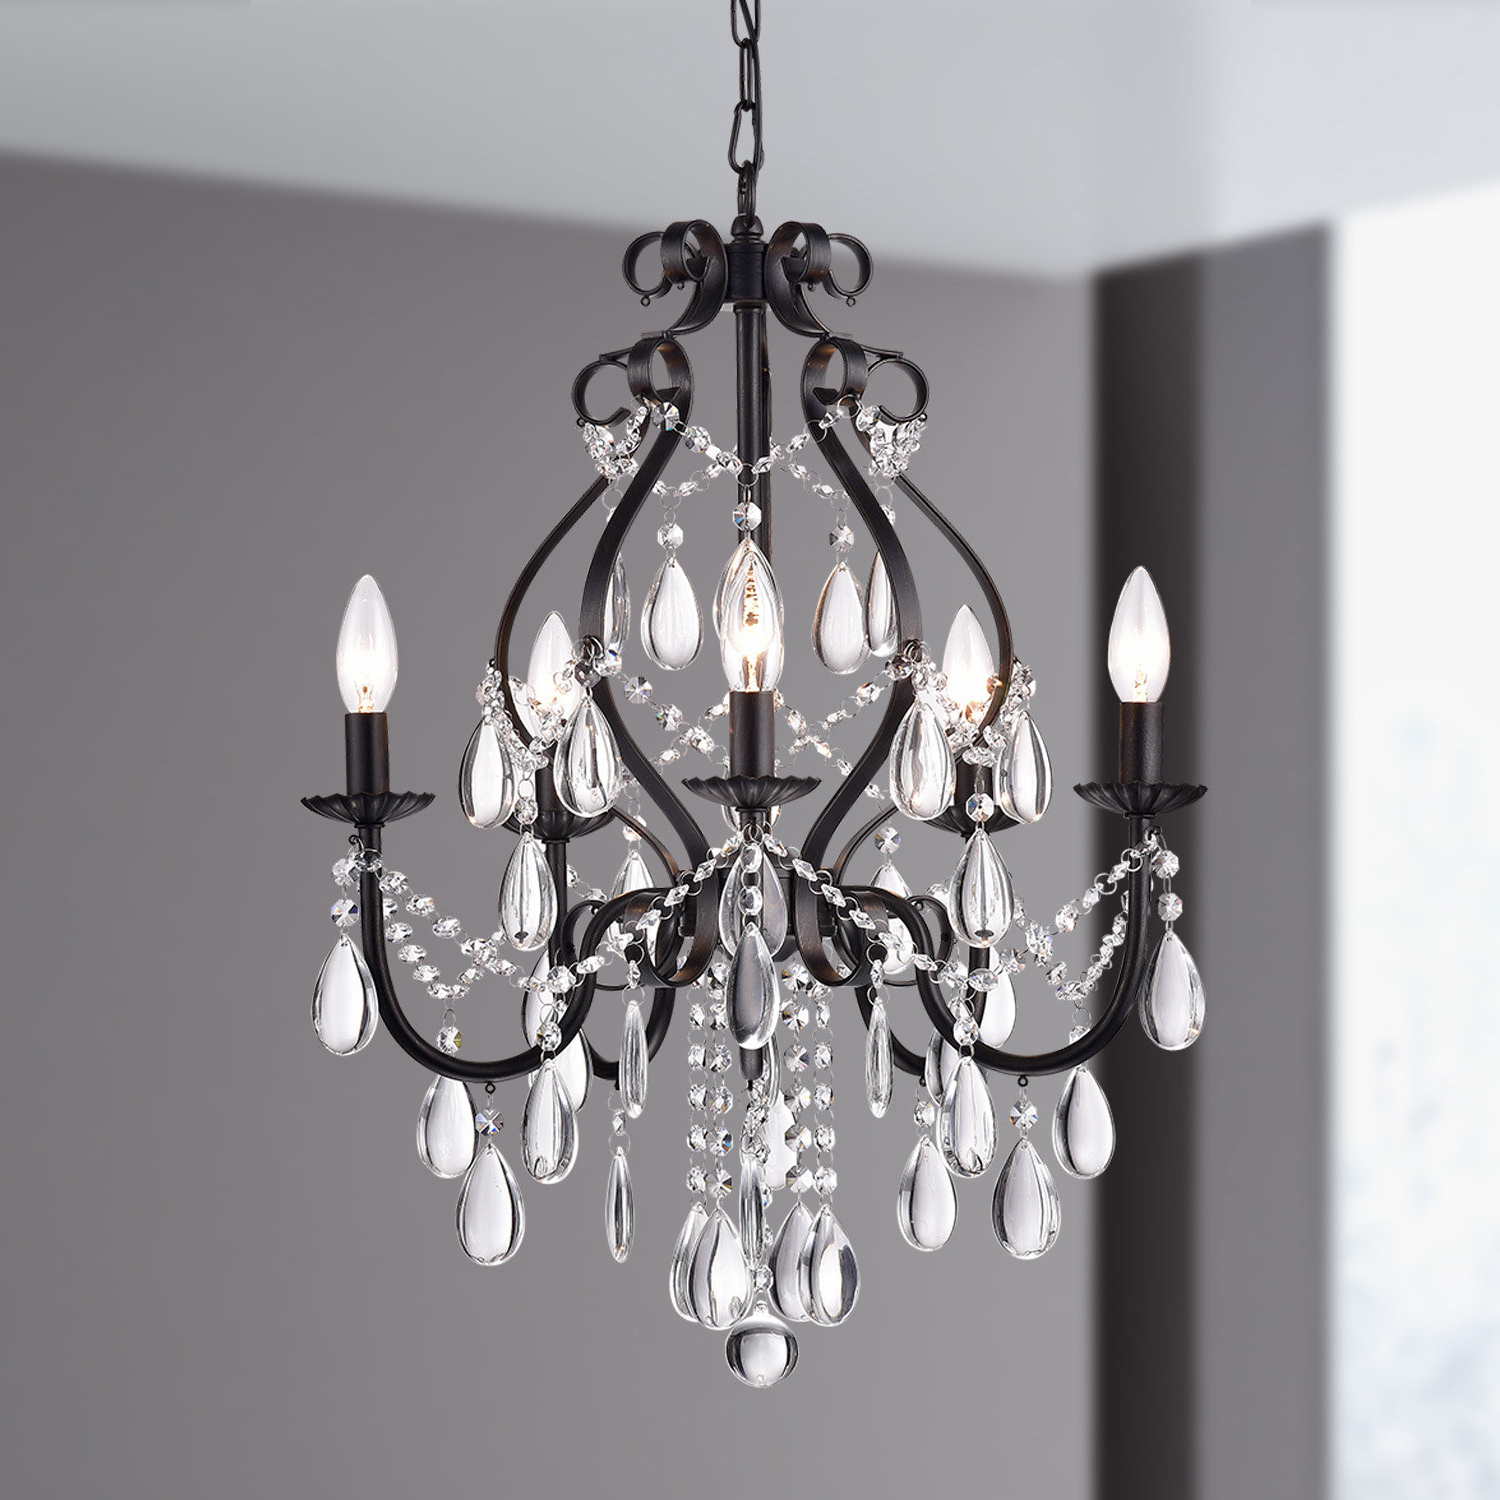 Newest Axl 5 Light Candle Style Chandelier Intended For Blanchette 5 Light Candle Style Chandeliers (View 15 of 20)